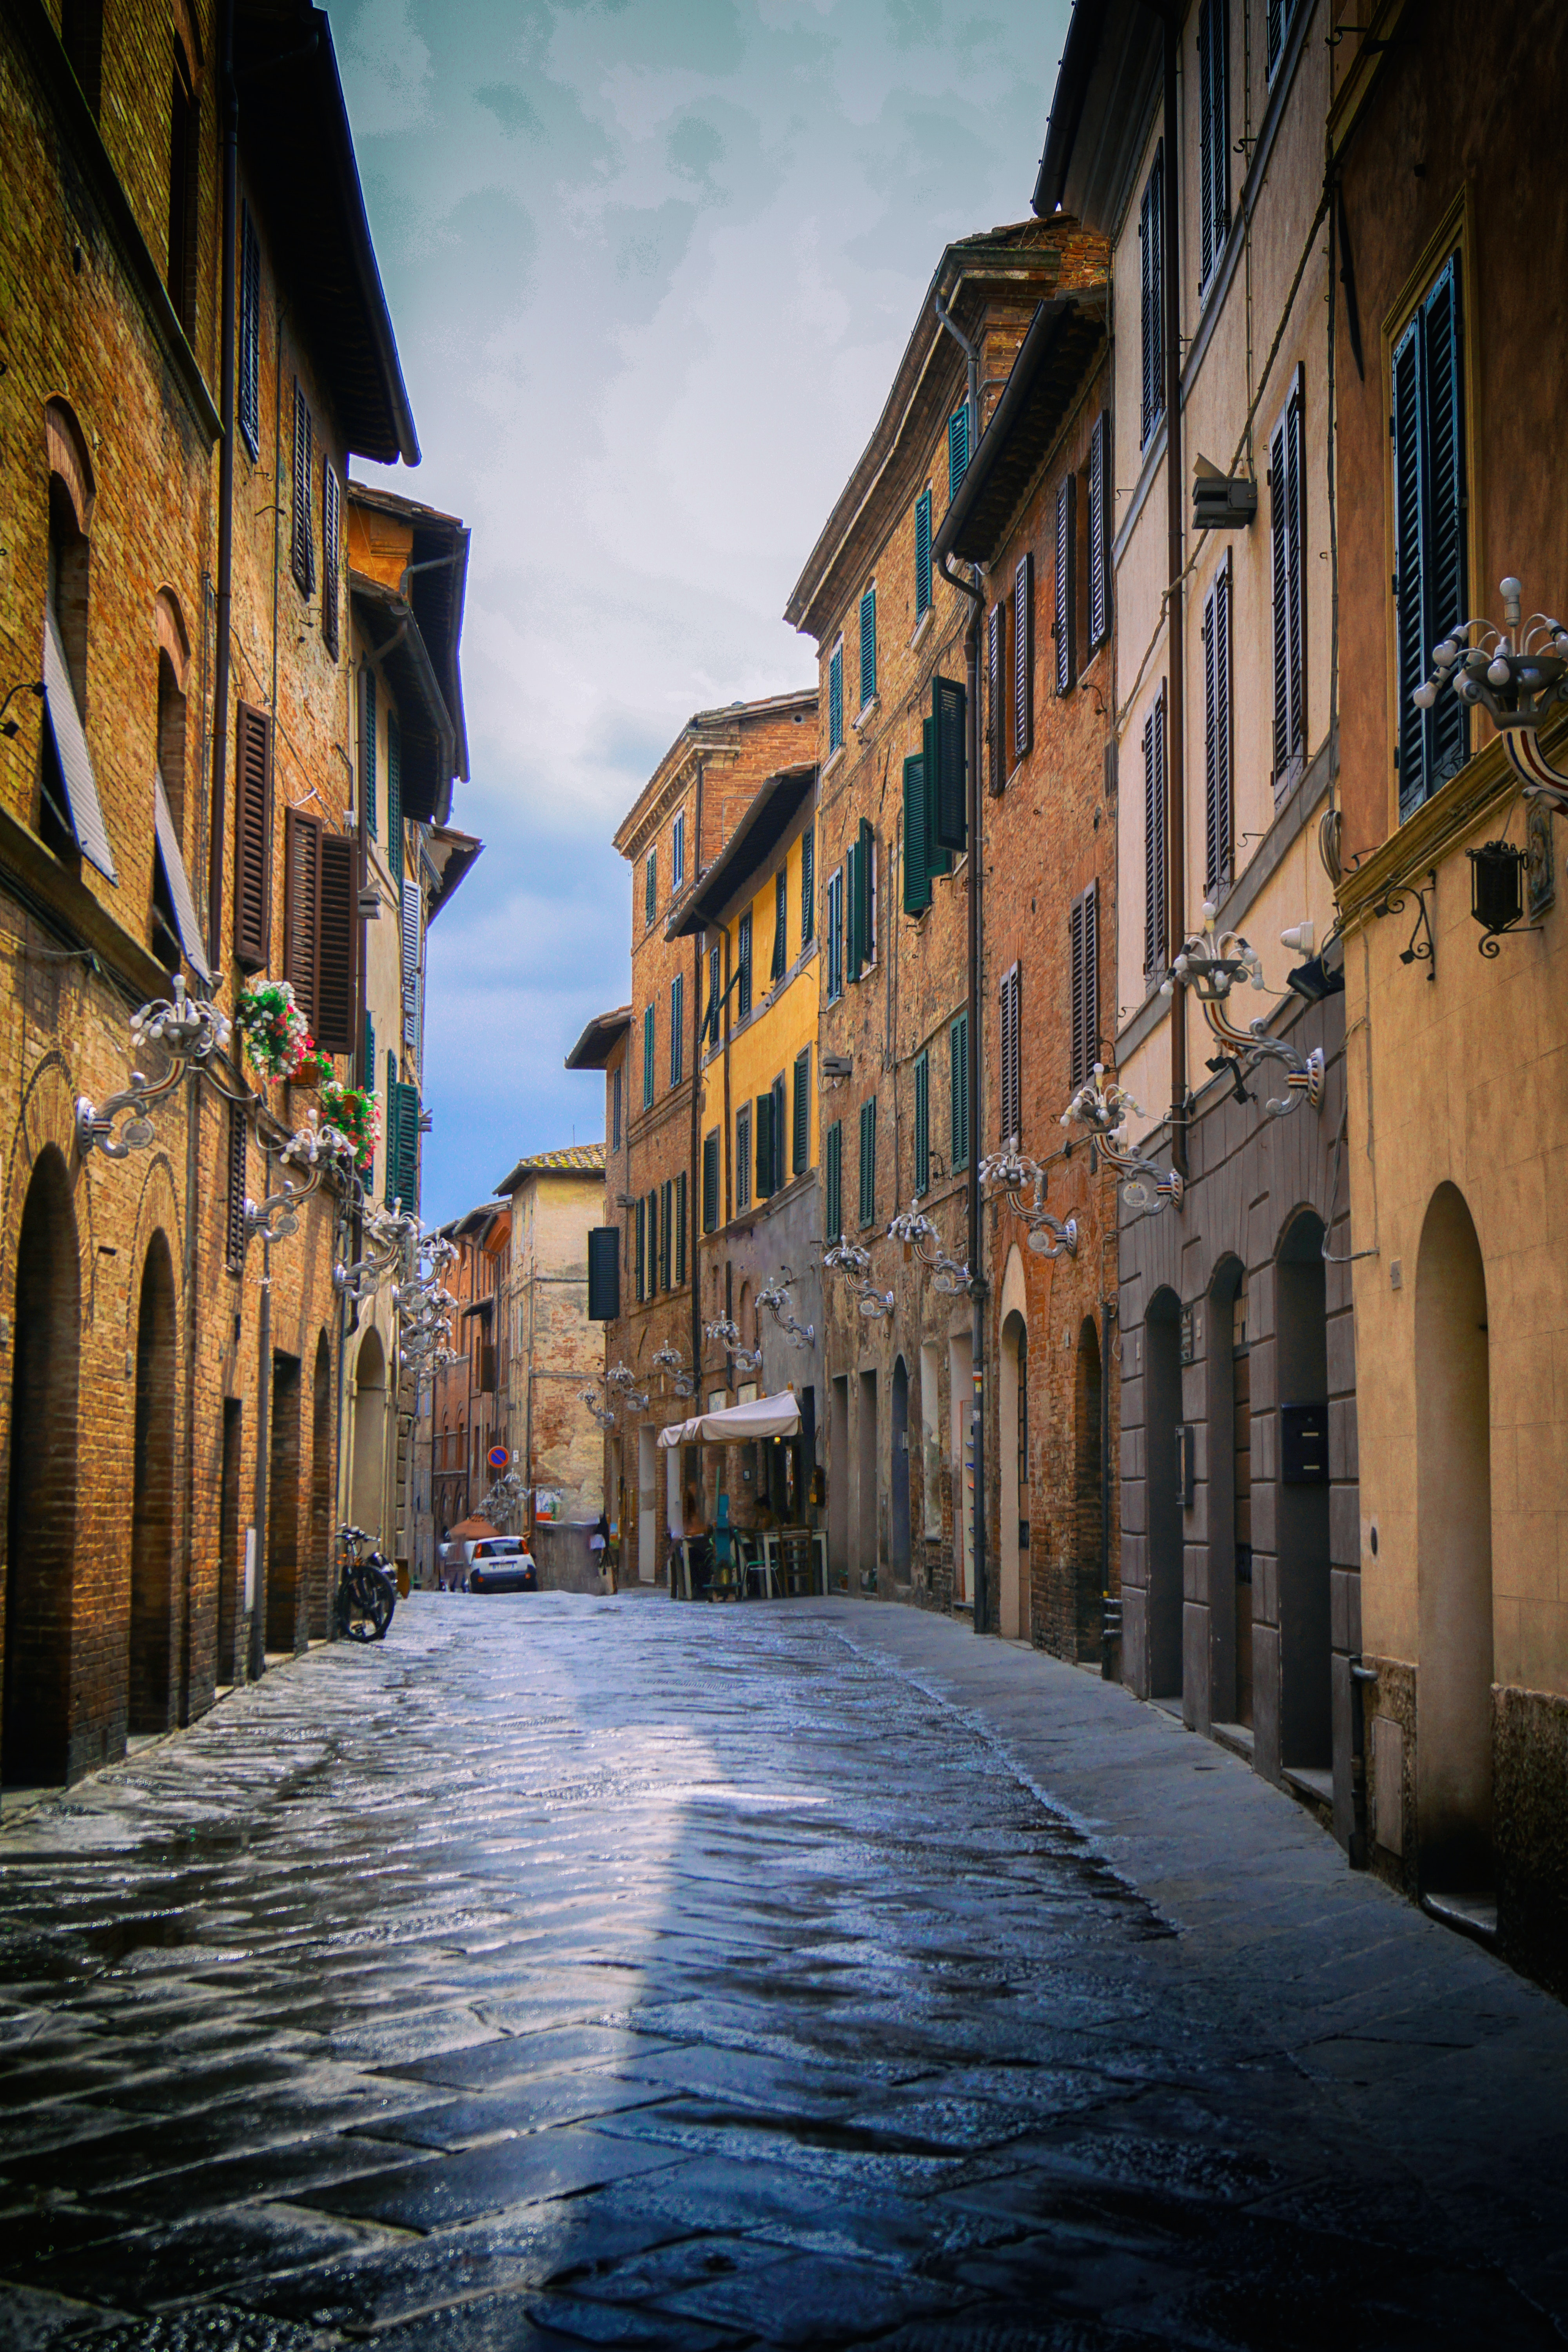 Lovely Italy Pictures 183 Pexels 183 Free Stock Photos